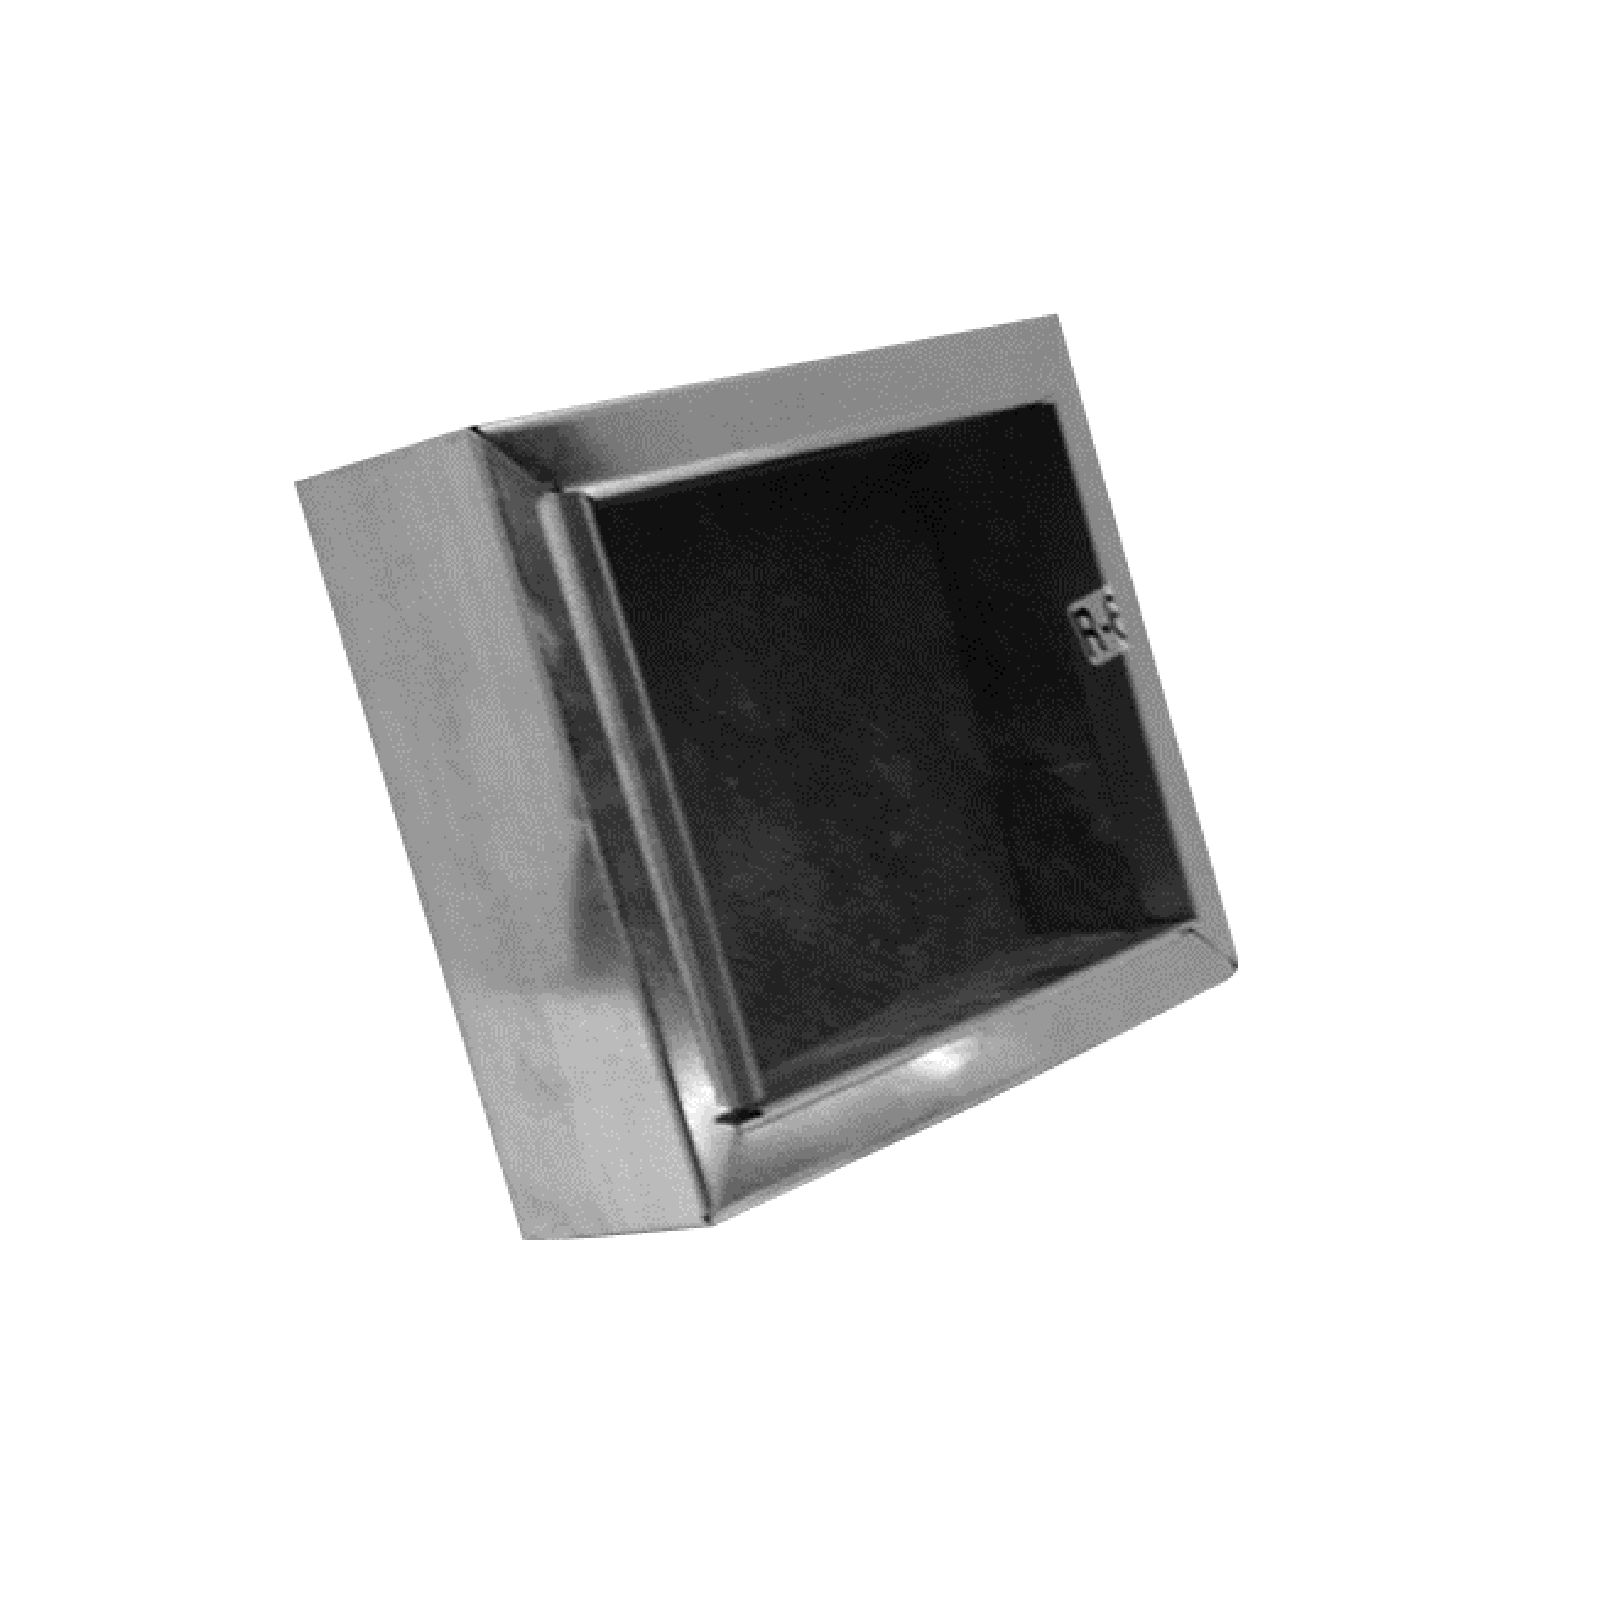 "Mitchell Metal 40R60806 - 8"" X 6"" Ductboard Register Box - R6 Ductboard Applications"